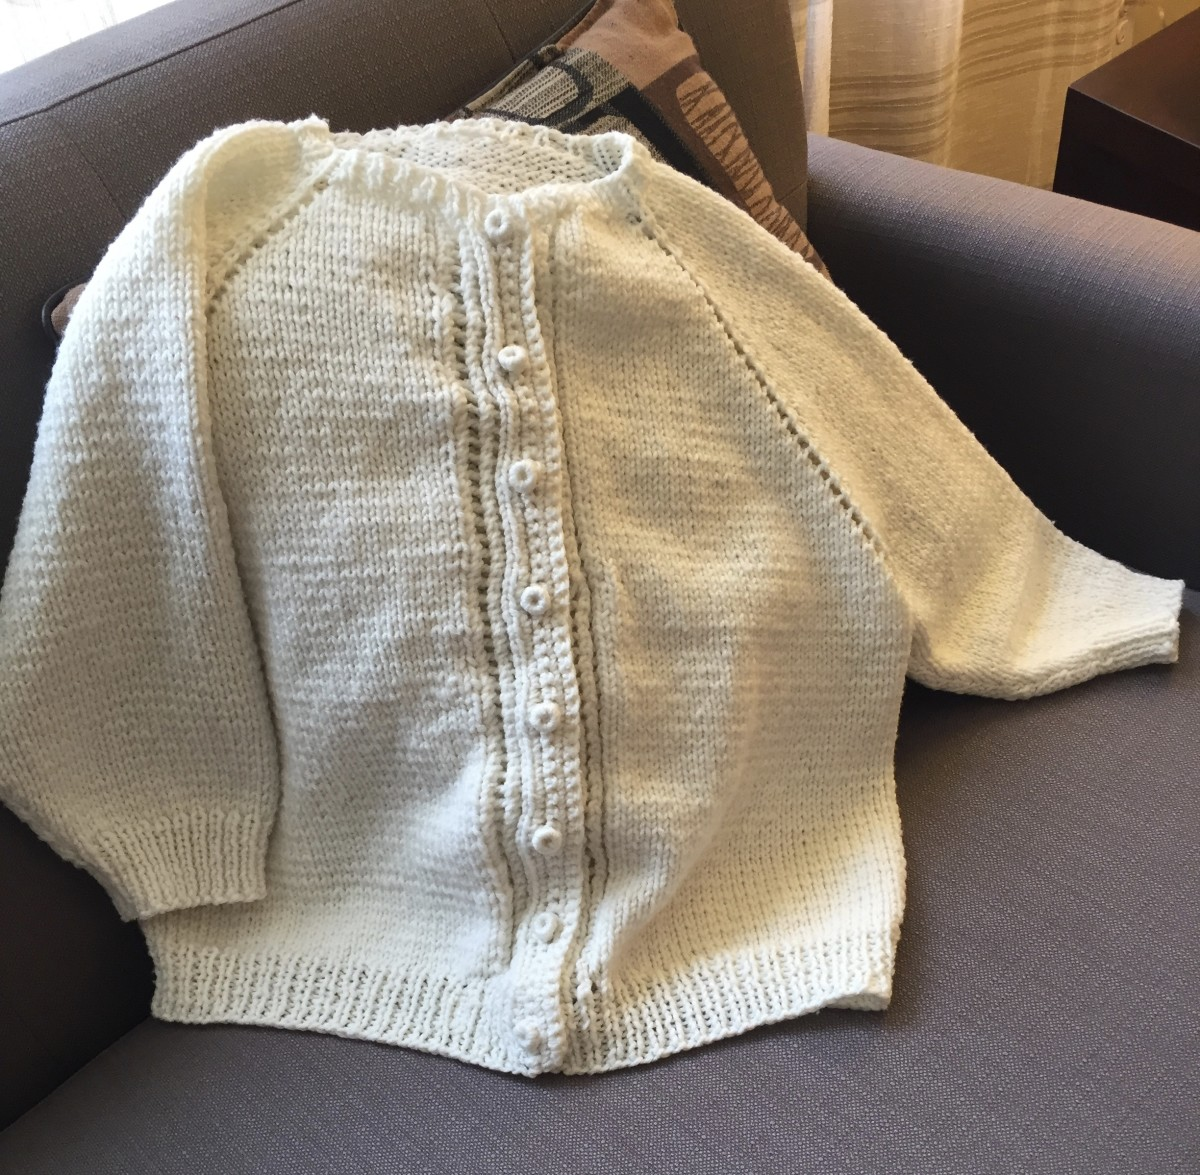 I used a pattern sheet from the 1950s to knit this top-down raglan cardigan